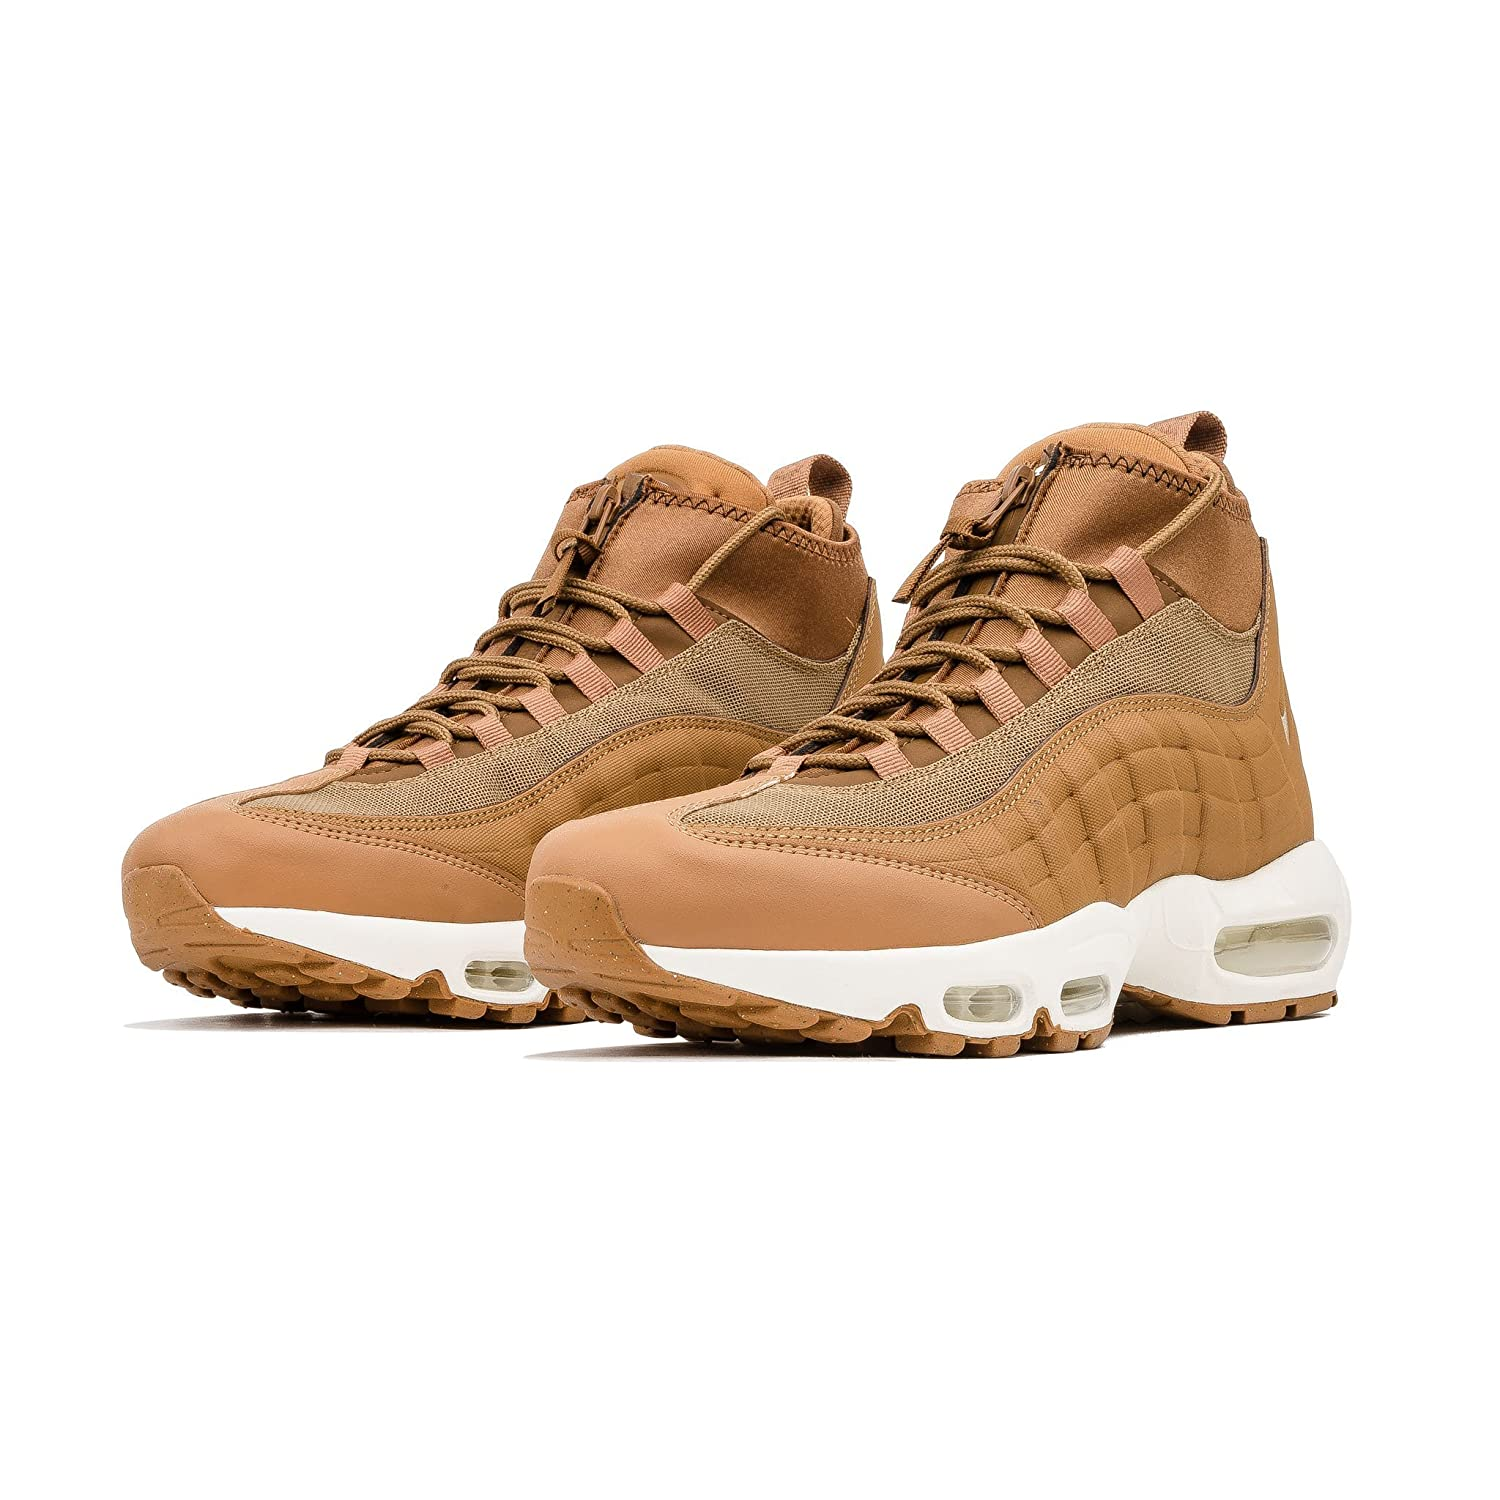 separation shoes 7860a 6adc6 Nike Men's Air Max 95 Sneakerboot 806809-201 Flax/Flax Ale ...